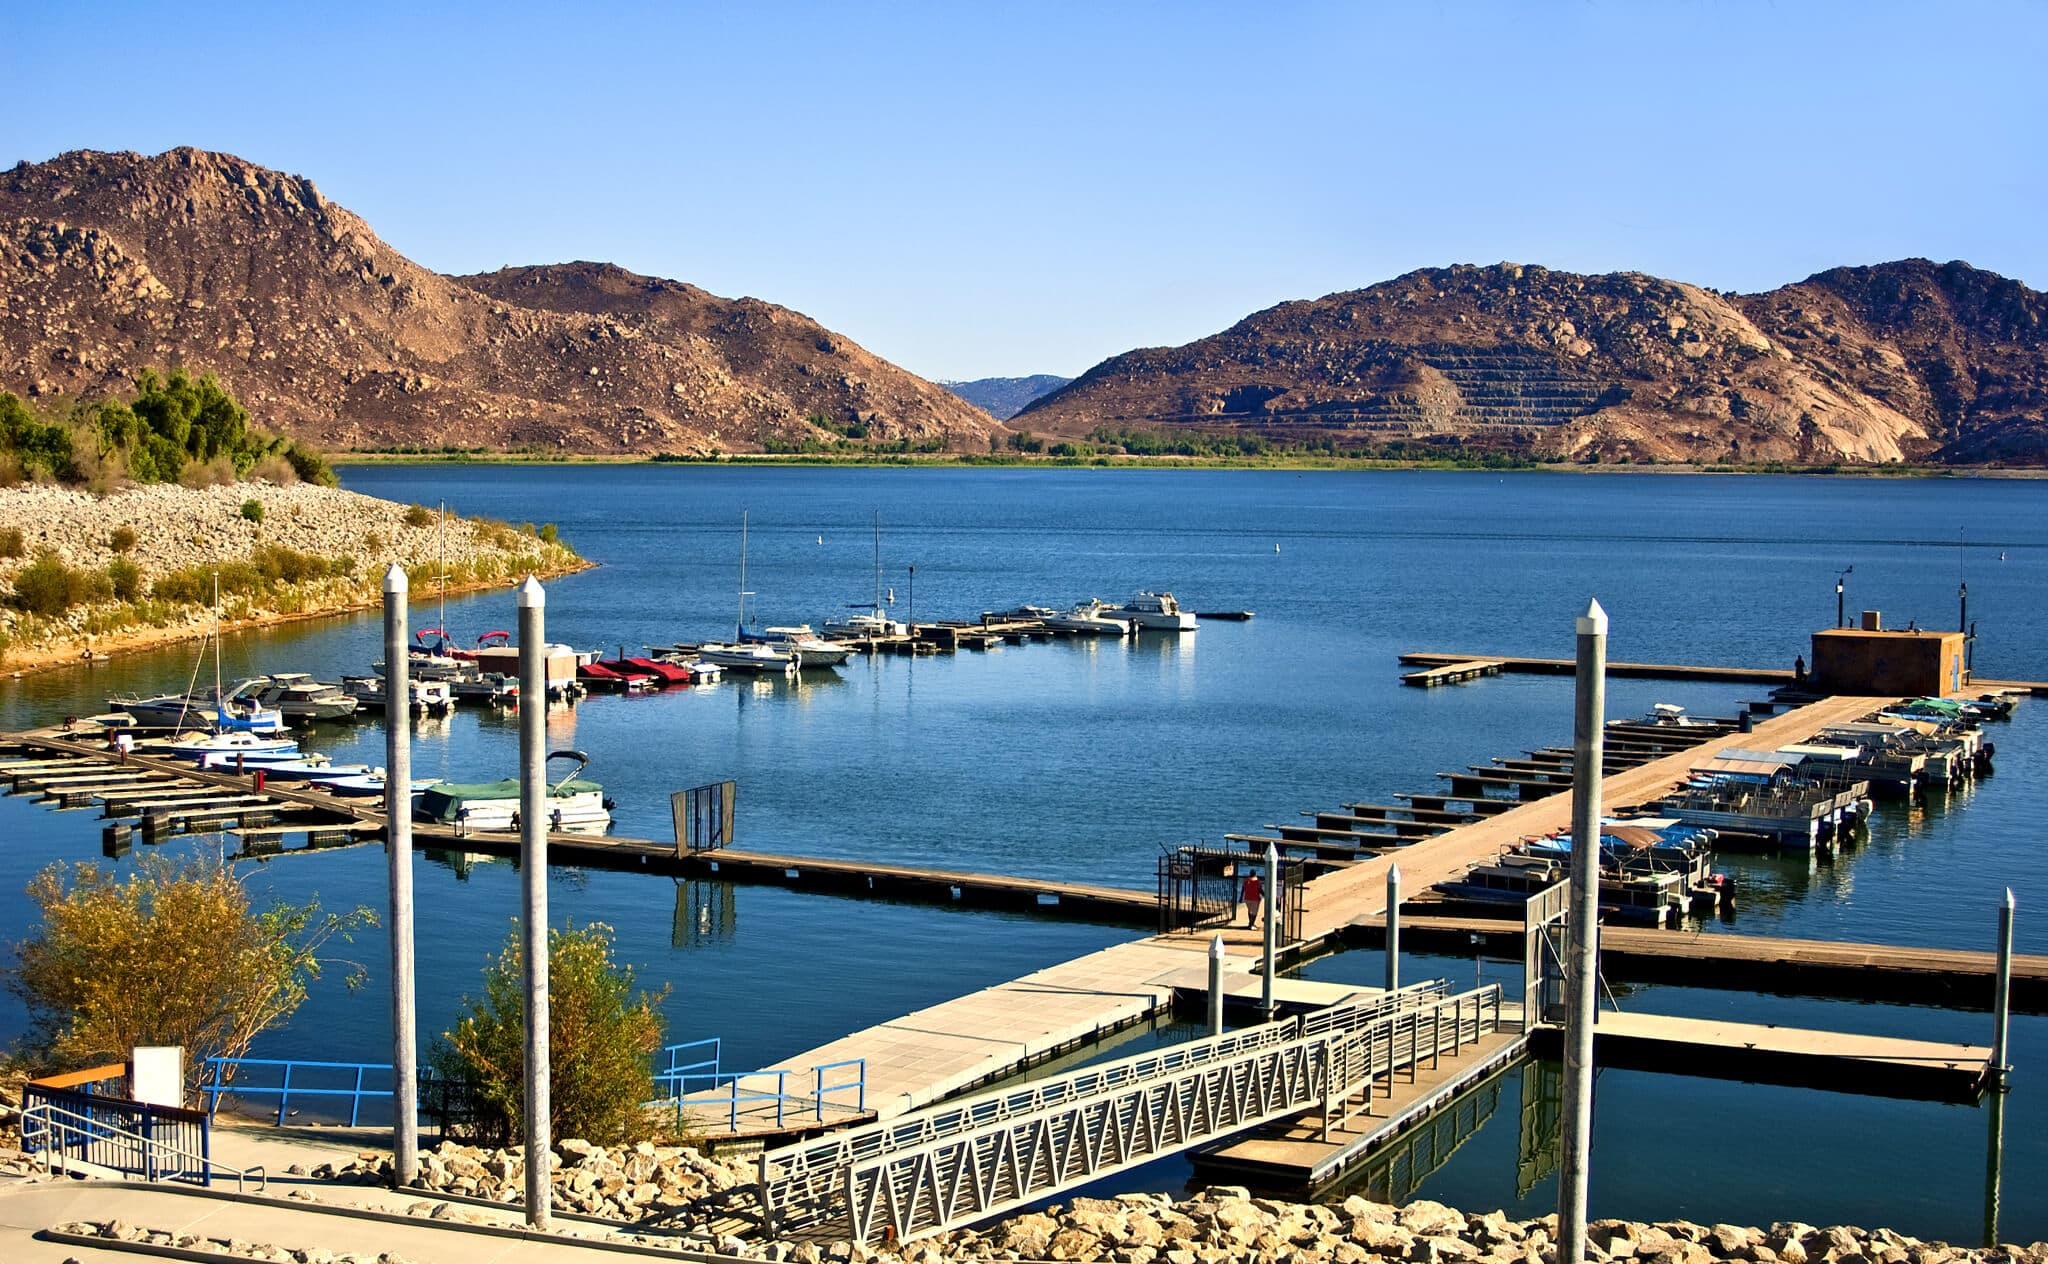 Perris Lake Fishing Guide The Outdoorsman Fishing Guides